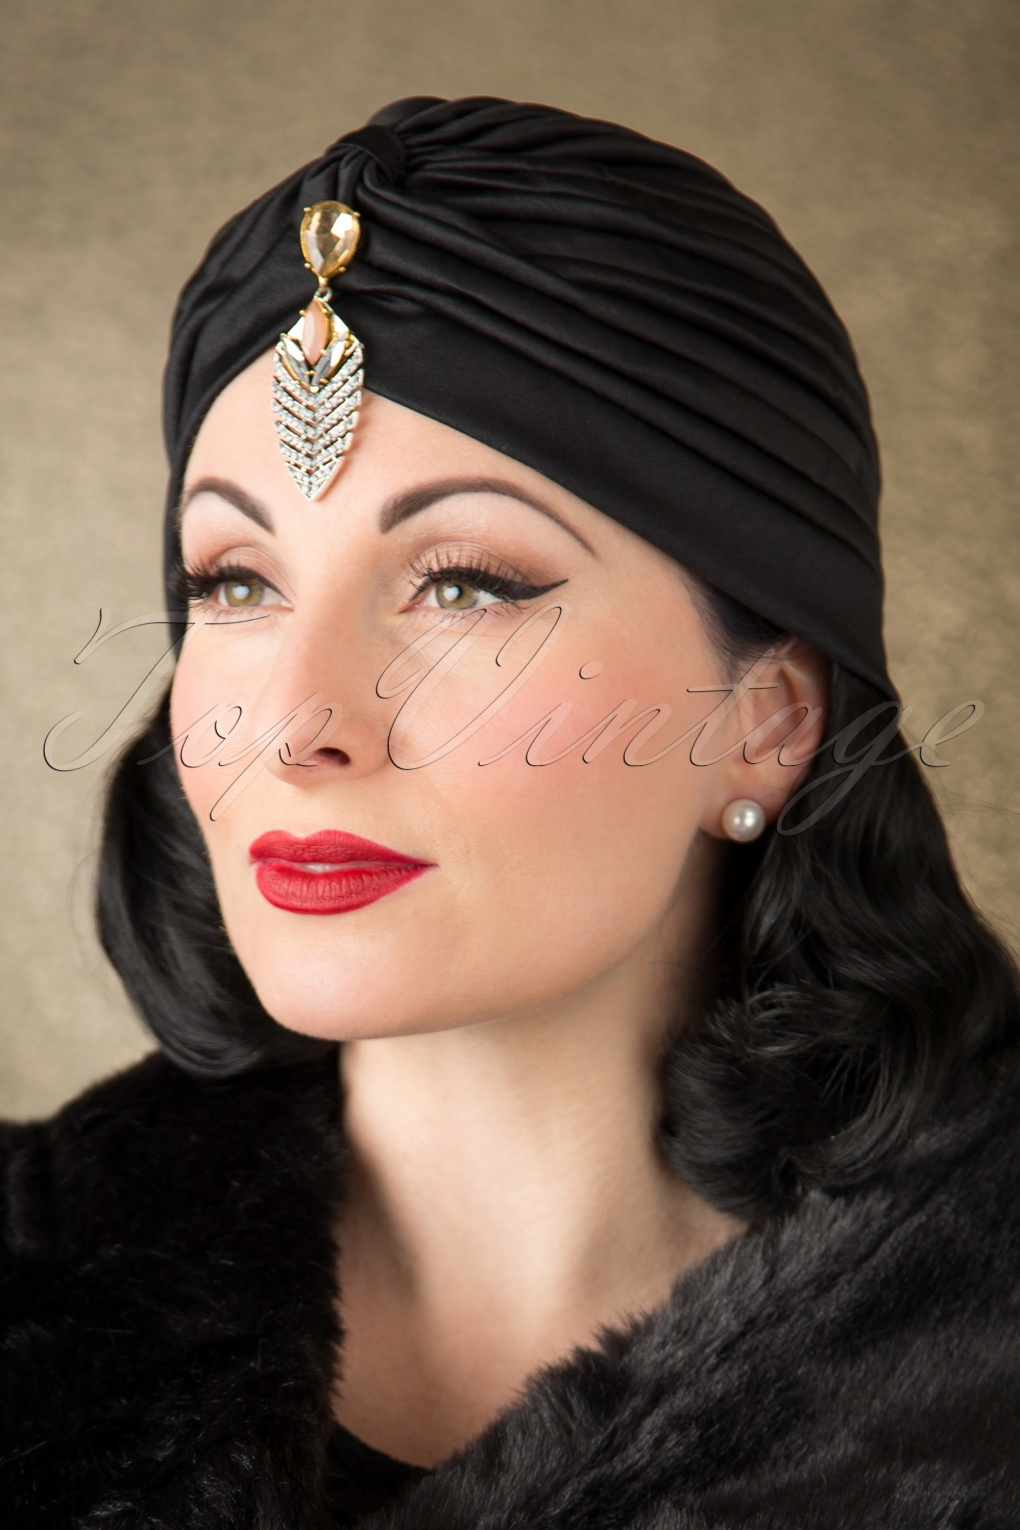 Vintage Hair Accessories: Combs, Headbands, Flowers, Scarf 50s Sally Sateen Turban Hat in Black £7.77 AT vintagedancer.com